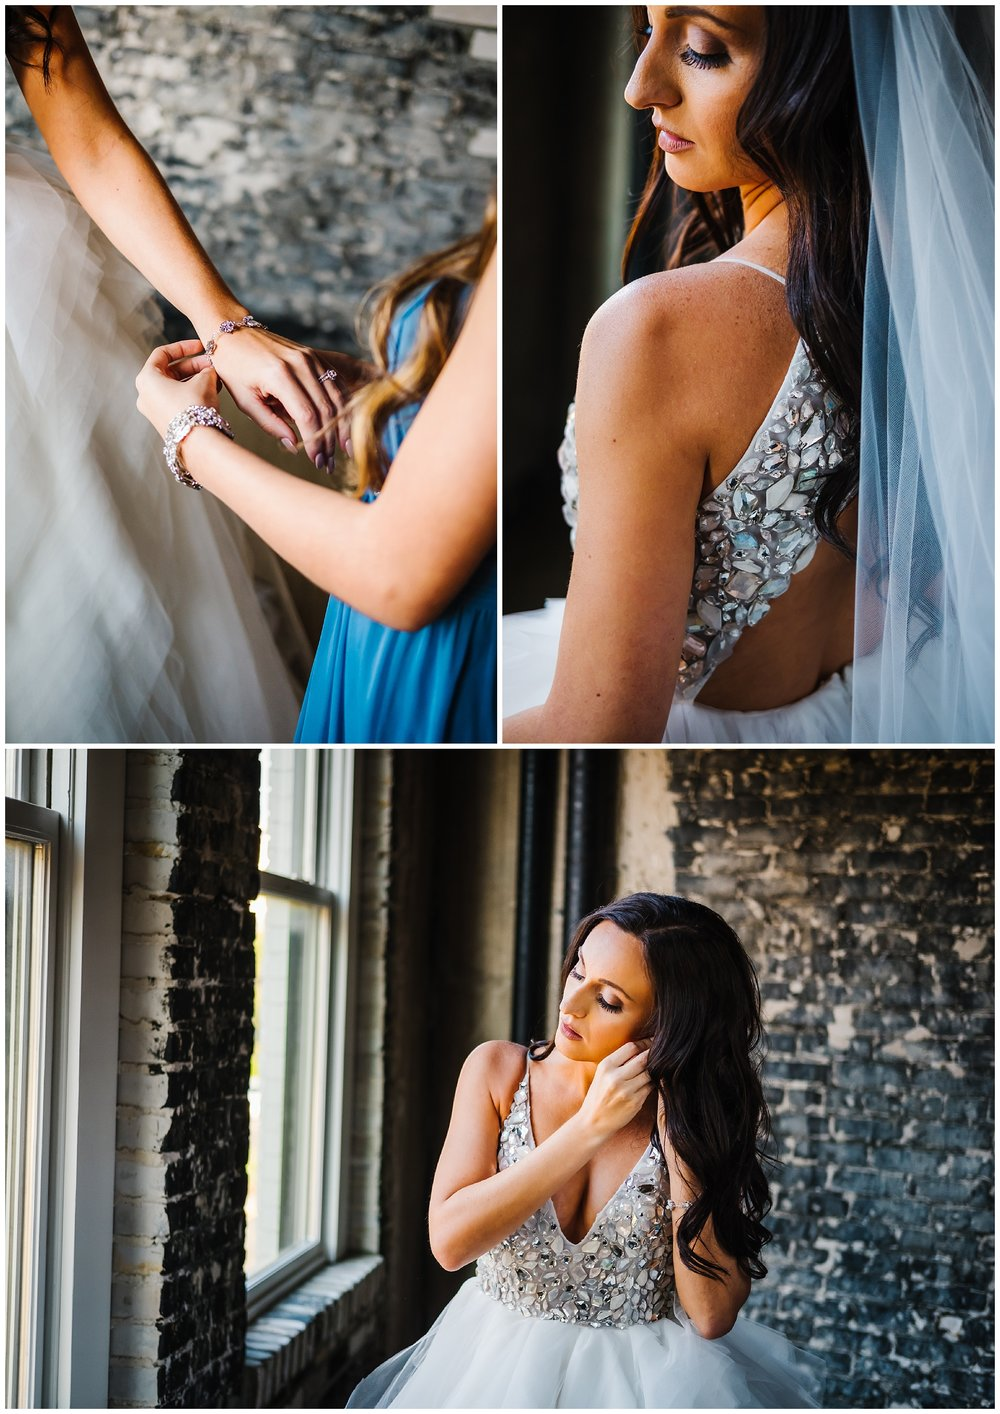 tampa-wedding-photographer-oxford-exchange-garland-candlelight-gold-hayley-paige_0011.jpg